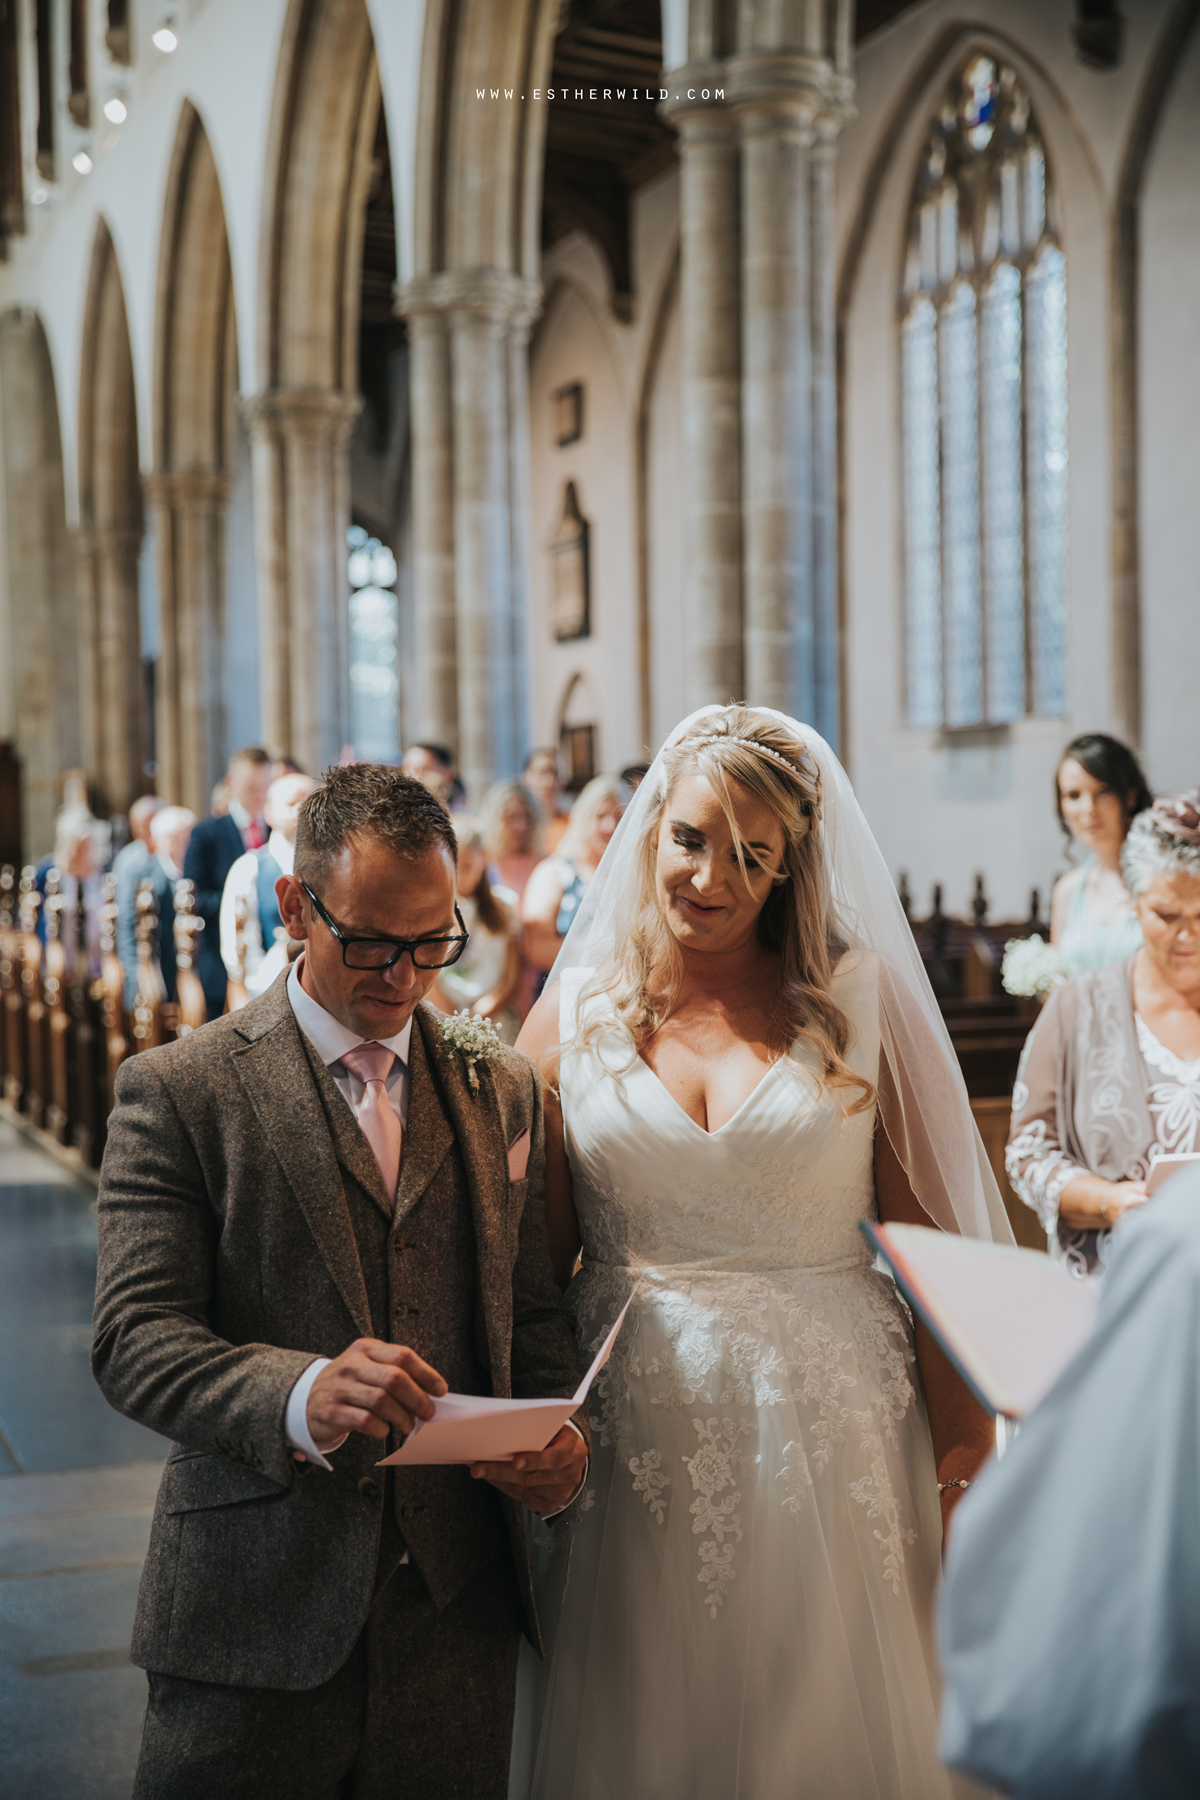 Swaffham_Wedding_Castle_Acre_Norfolk_Esther_Wild_Photographer_Wedding_Photography_3R8A0646.jpg